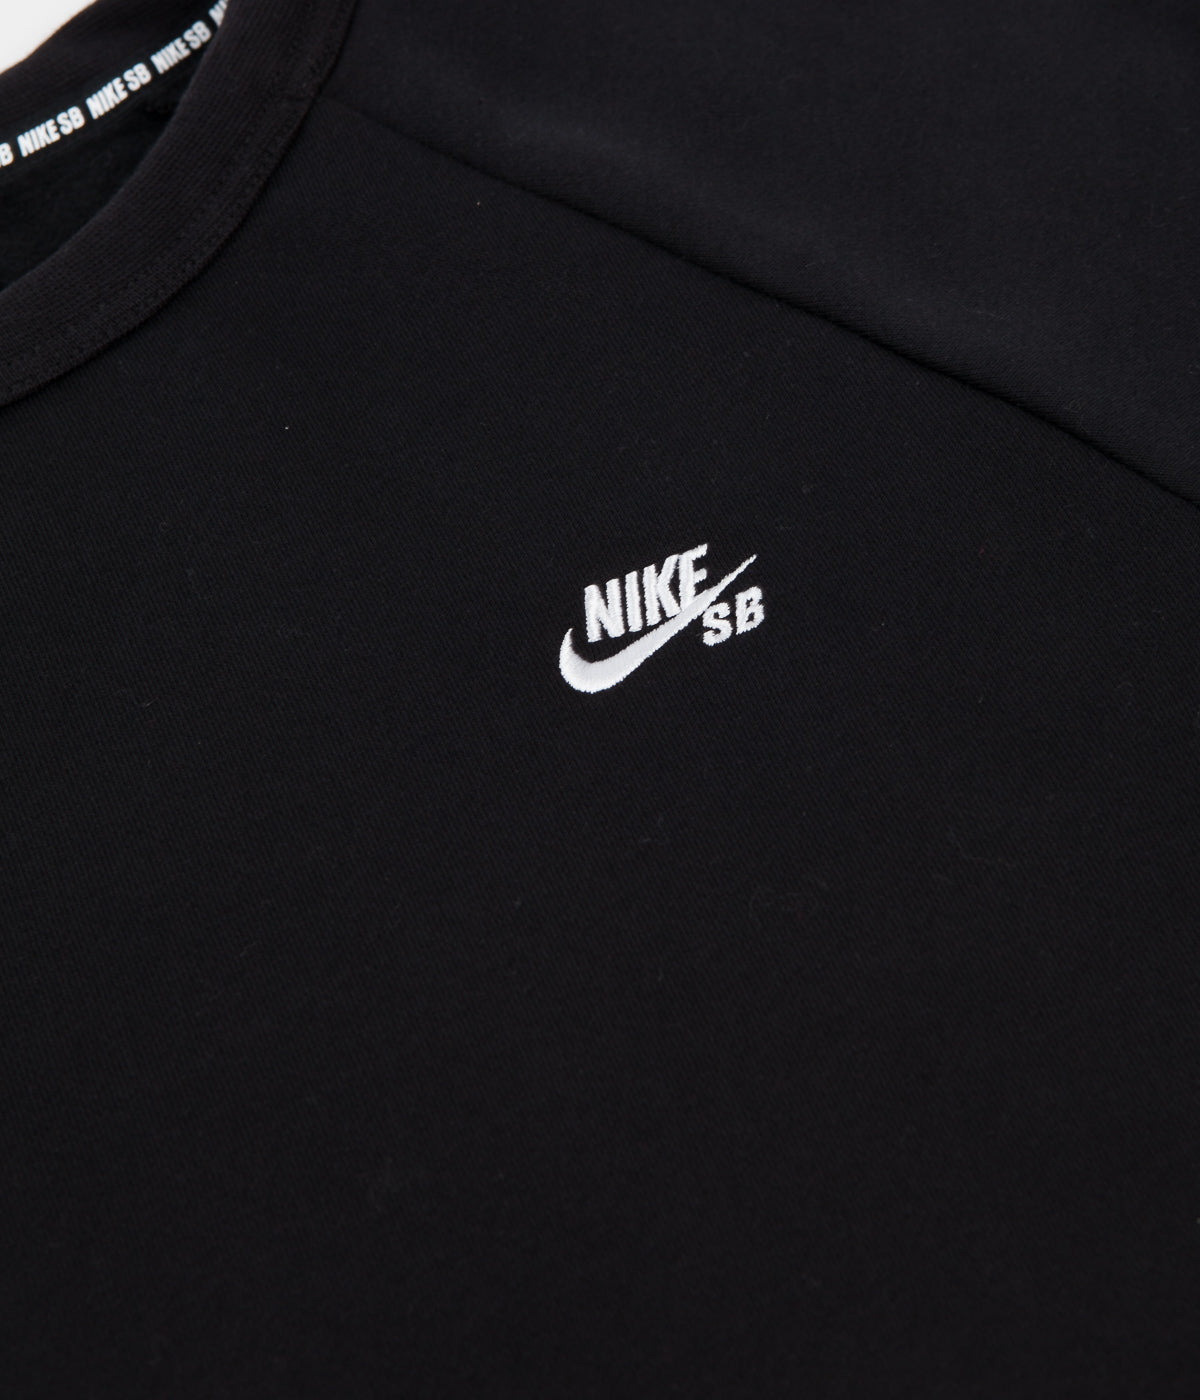 Nike SB Icon Crew Neck Sweatshirt - Black / White